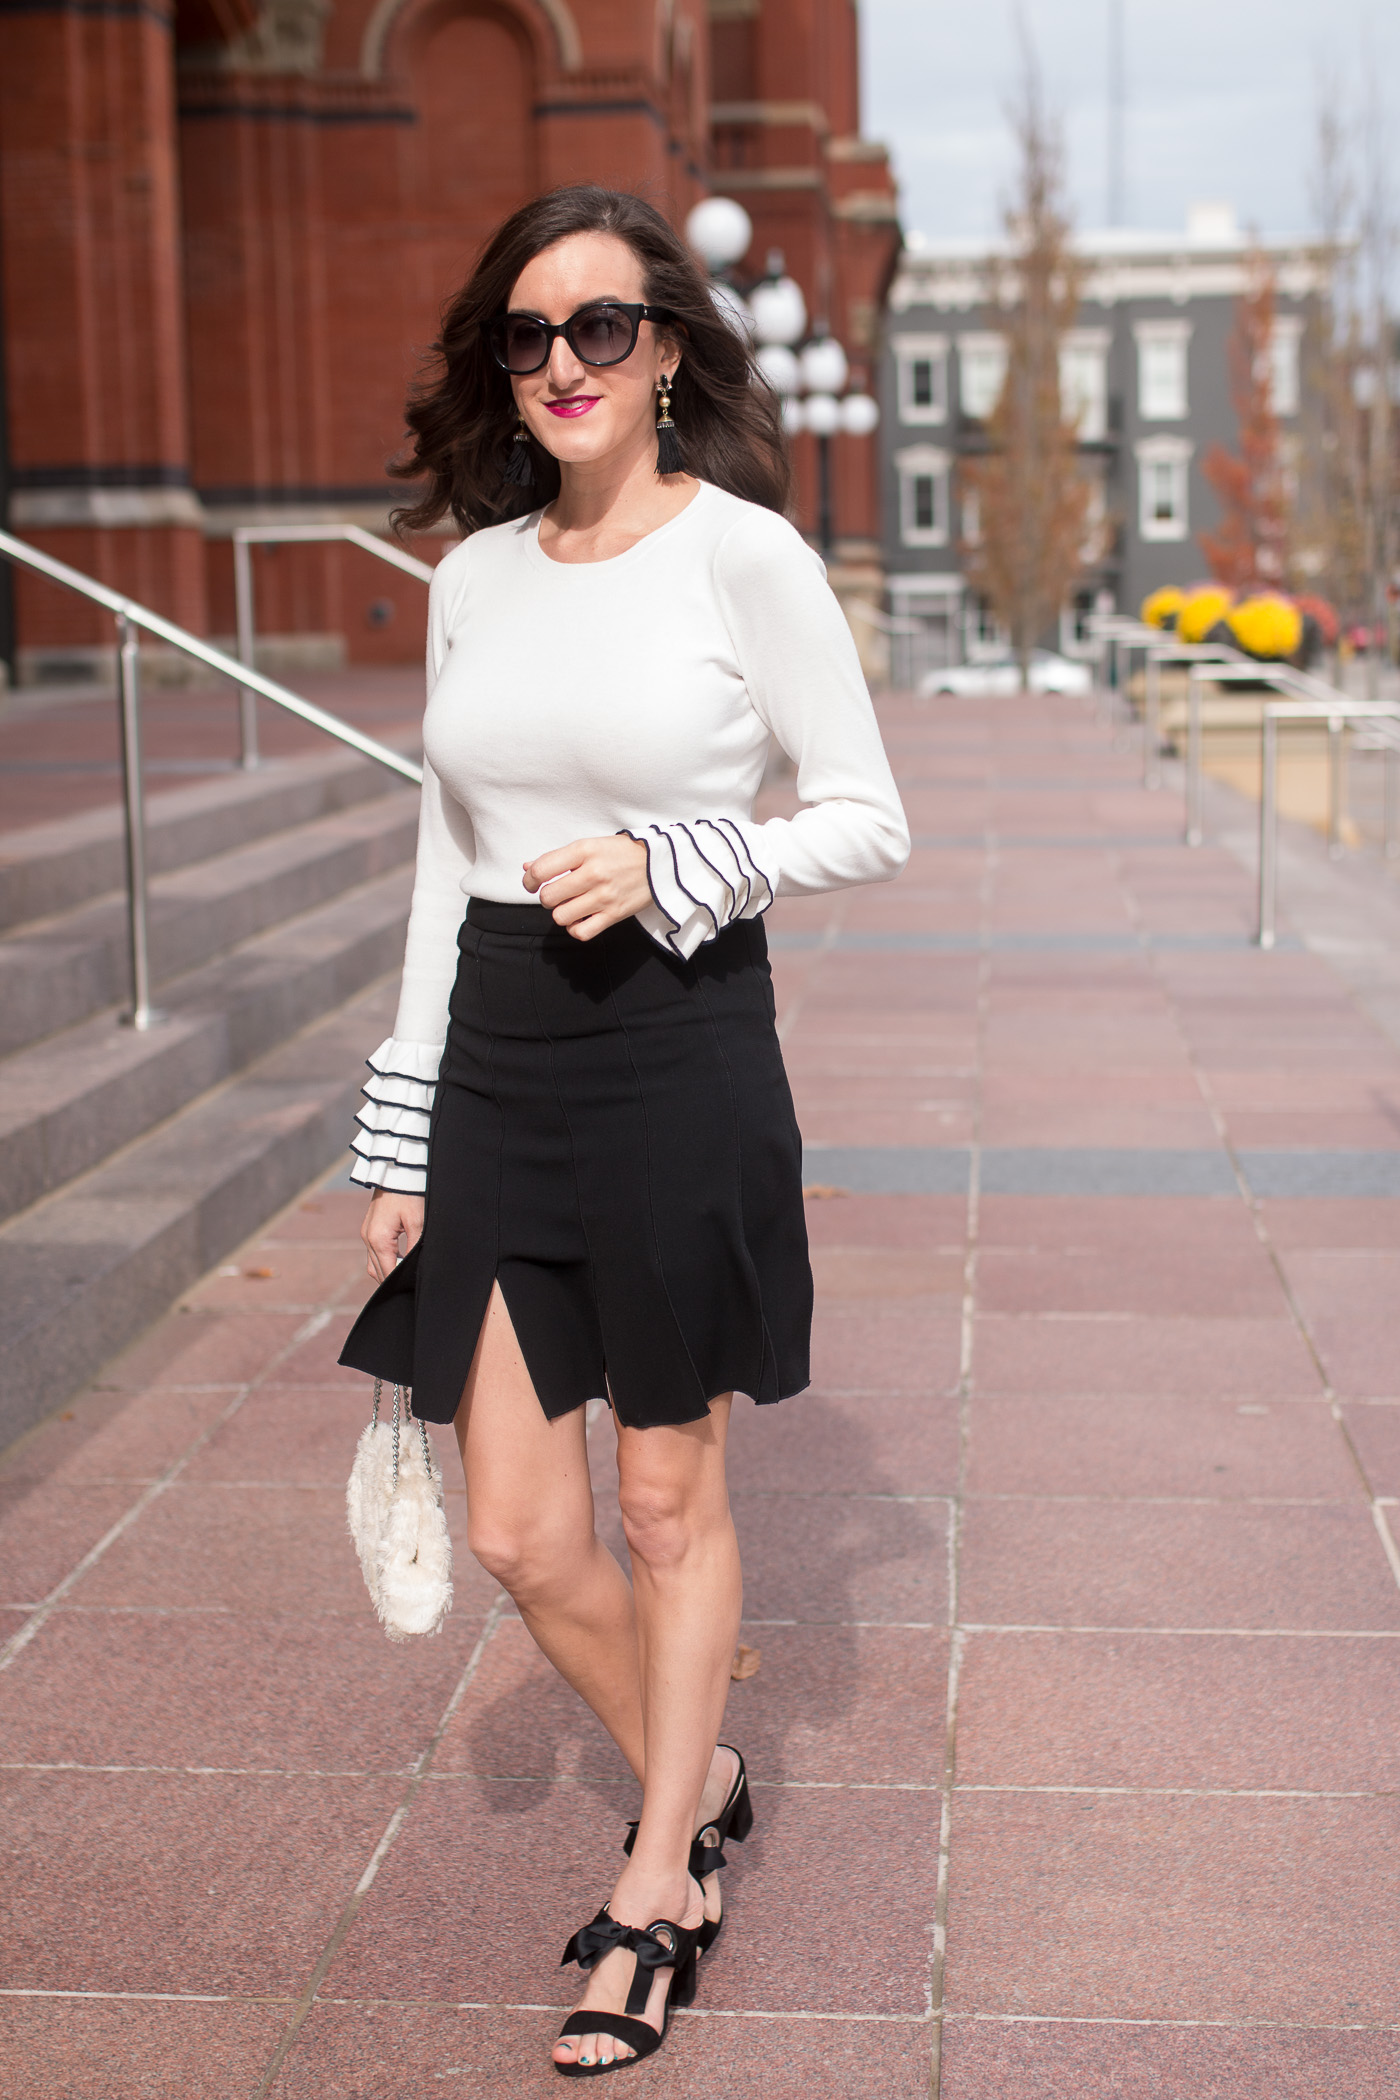 Black White Outfits for Women